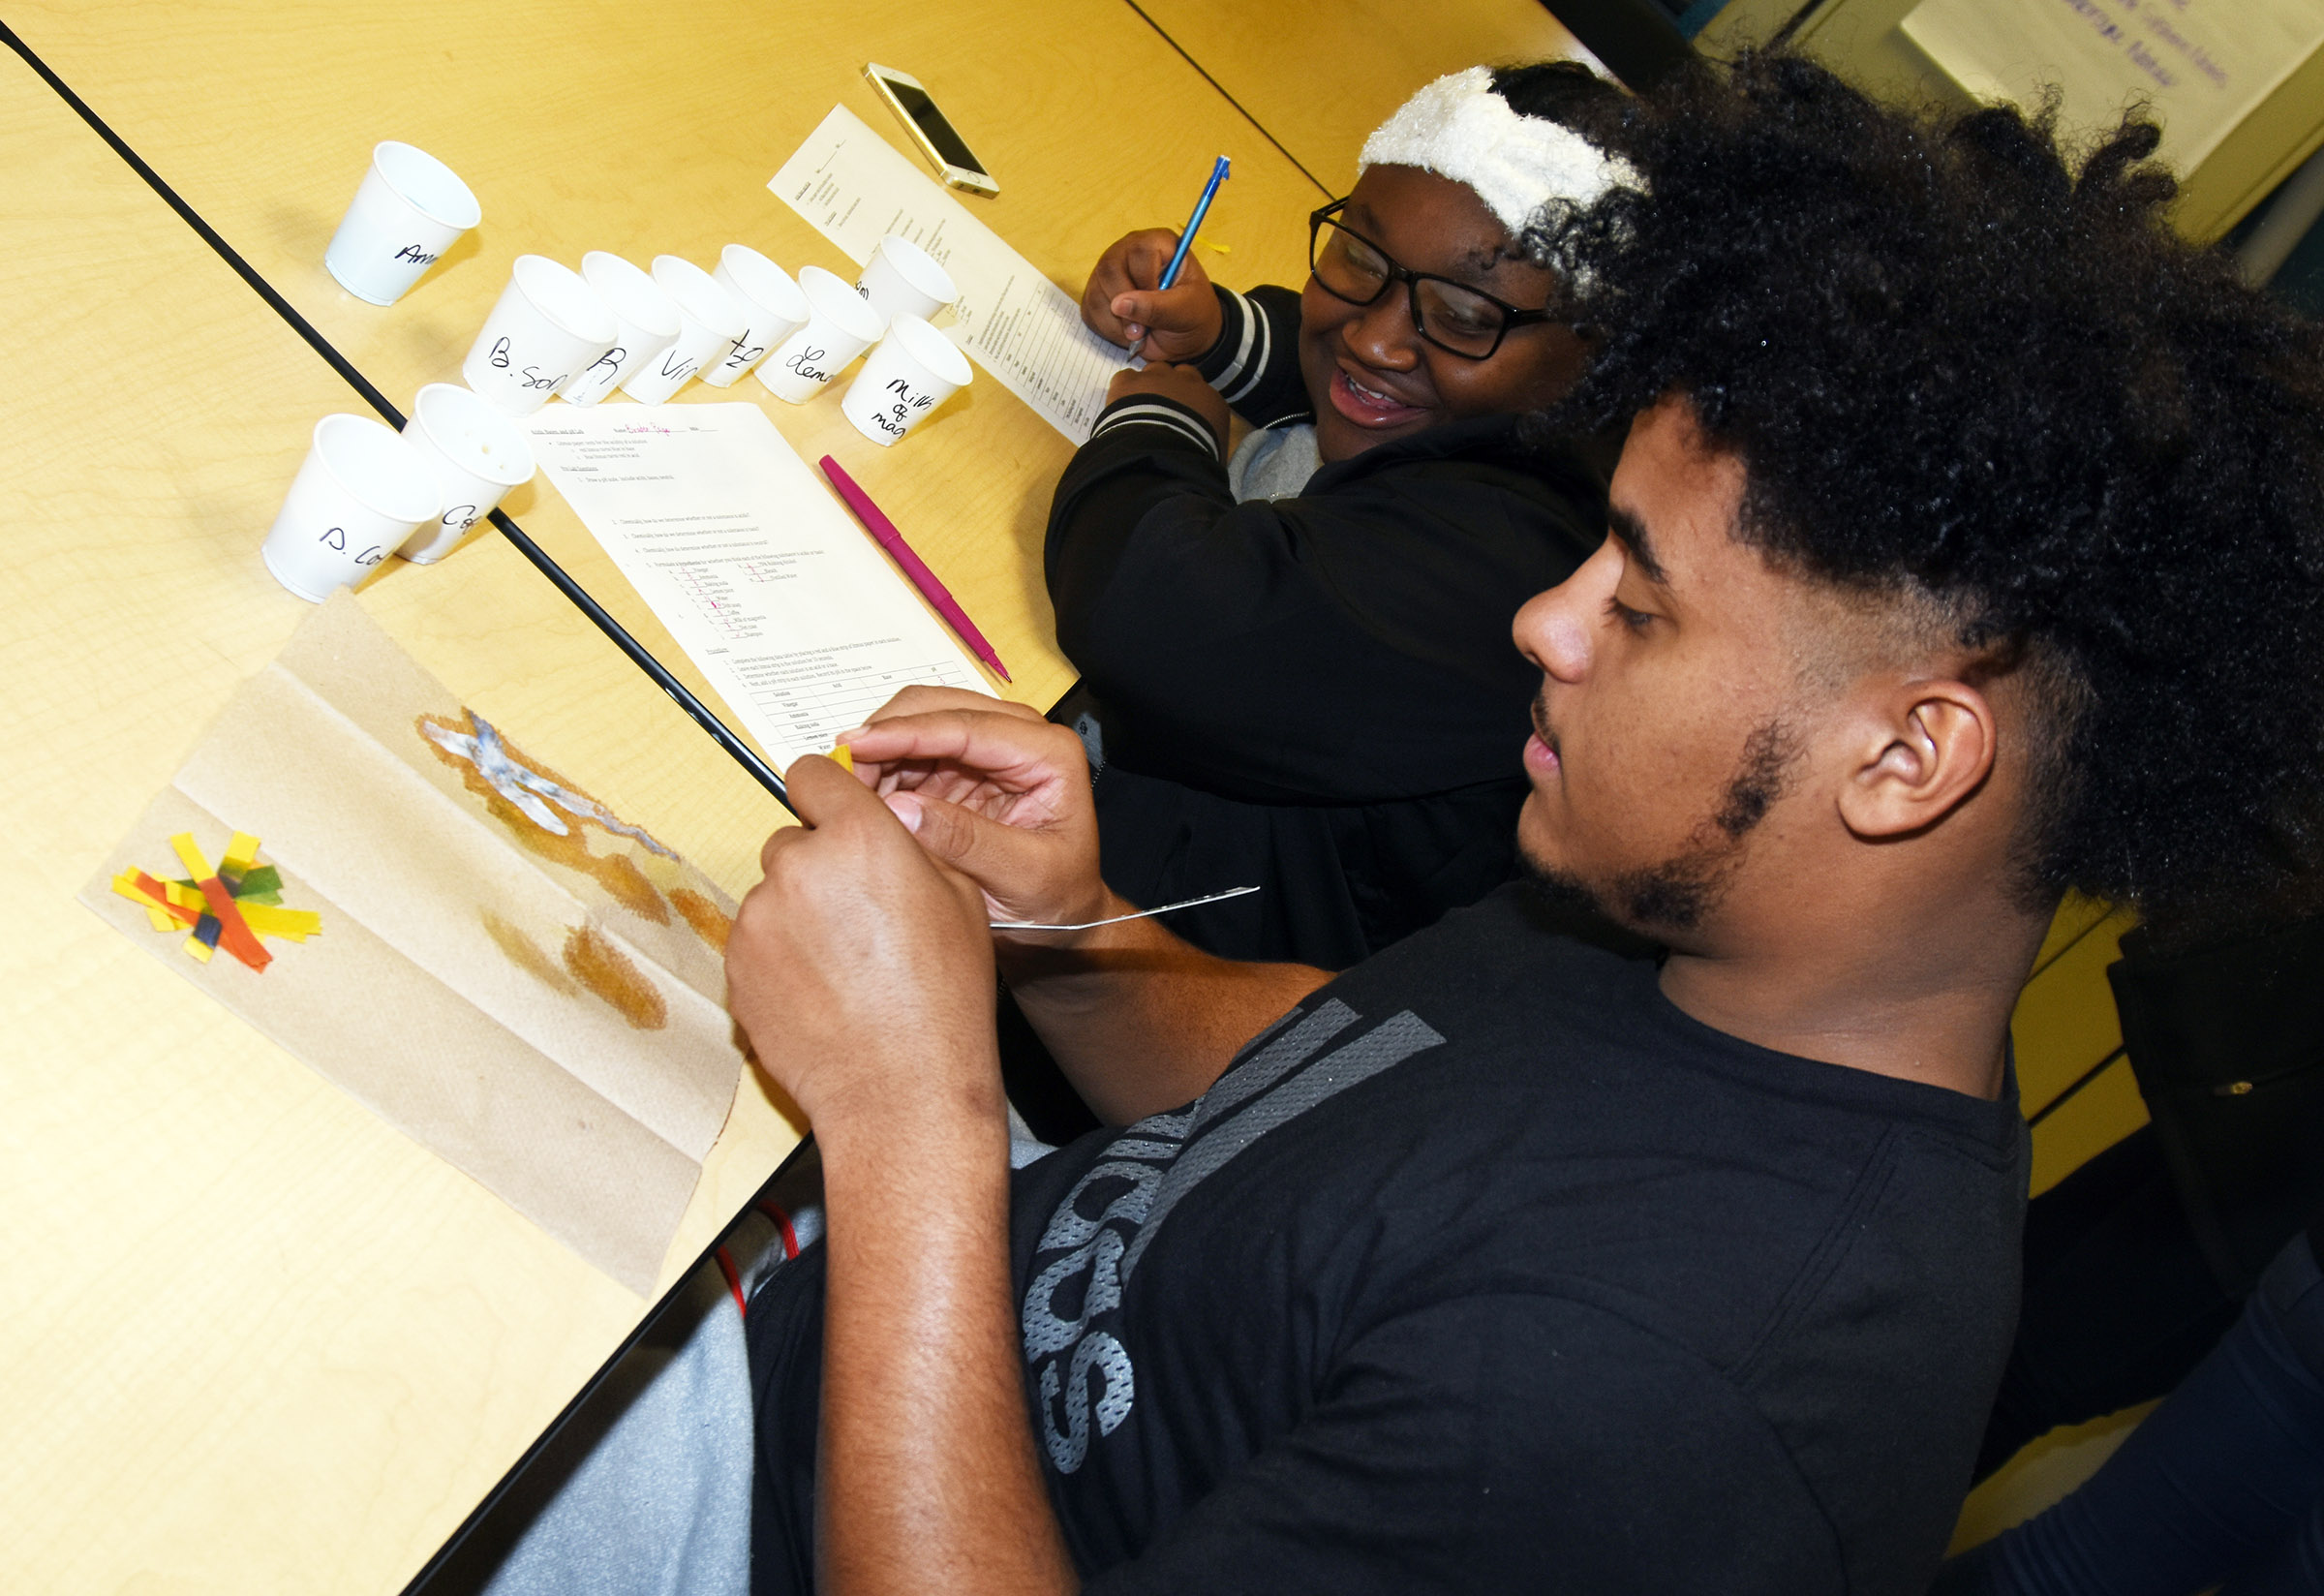 CHS sophomores Ashalique Adams, at left, and Braden Paige perform a litmus test.